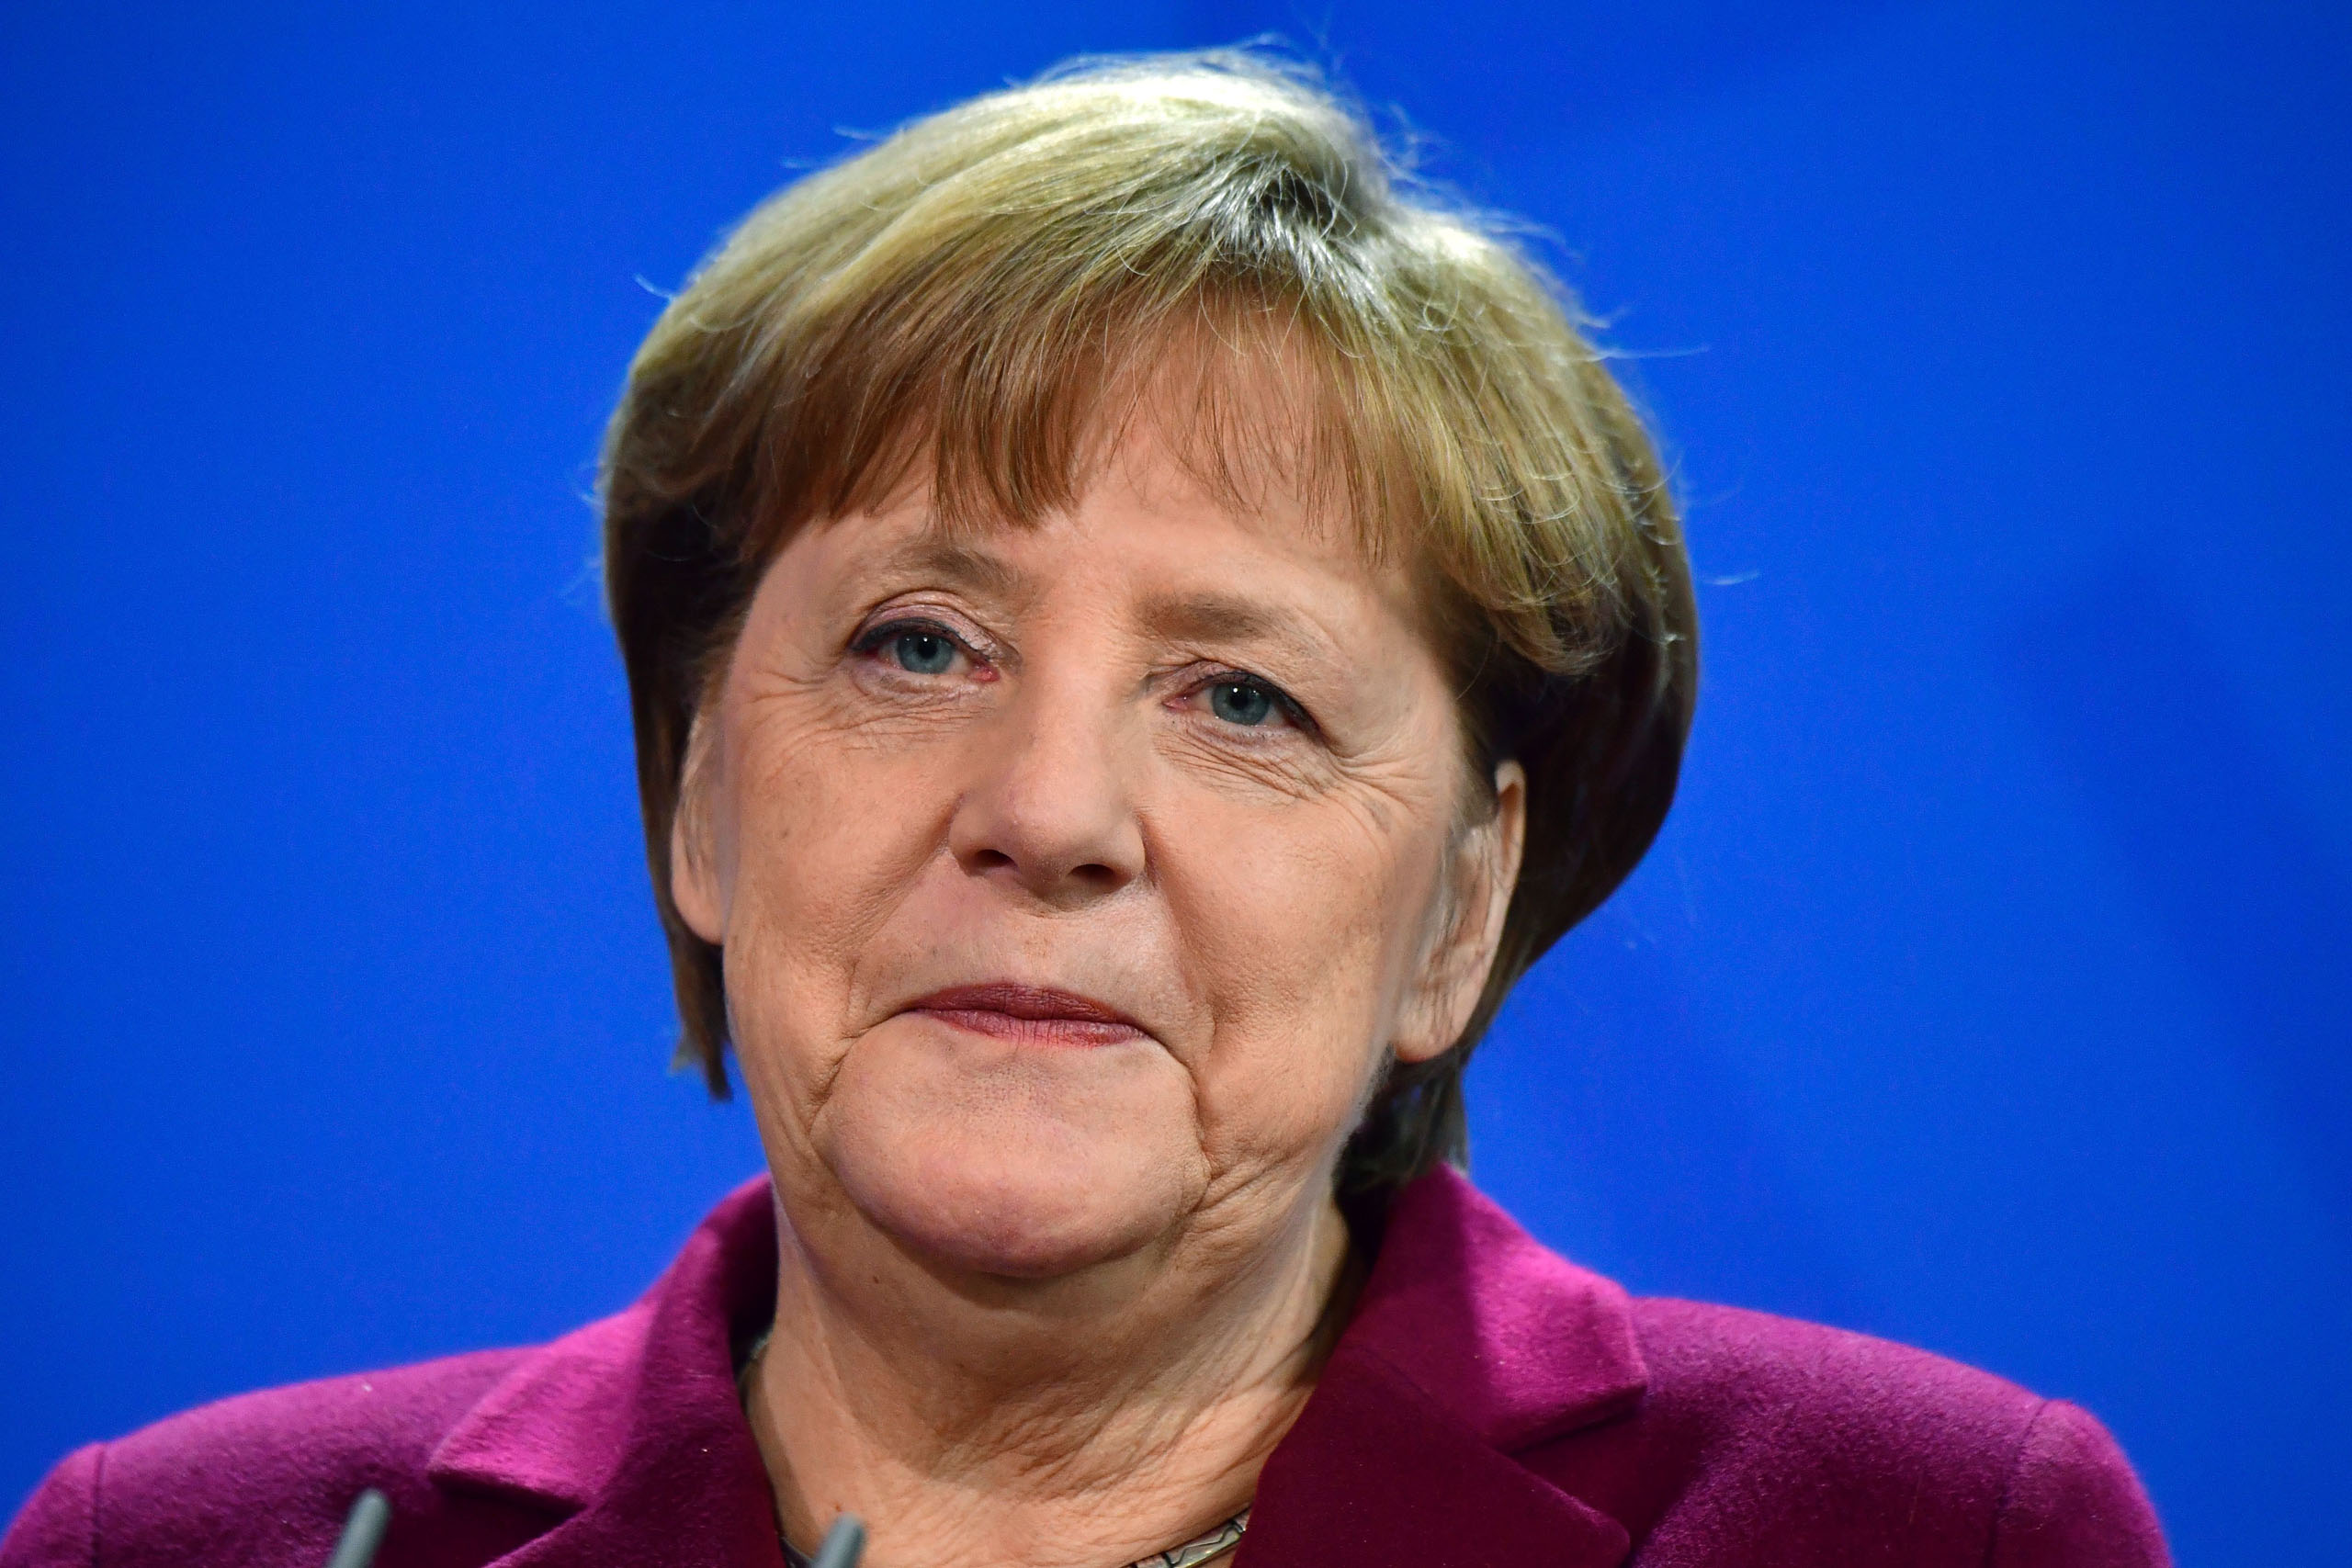 German Chancellor Angela Merkel attends a press conference with her Serbian counterpart on March 14, 2017 at the chancellery in Berlin.